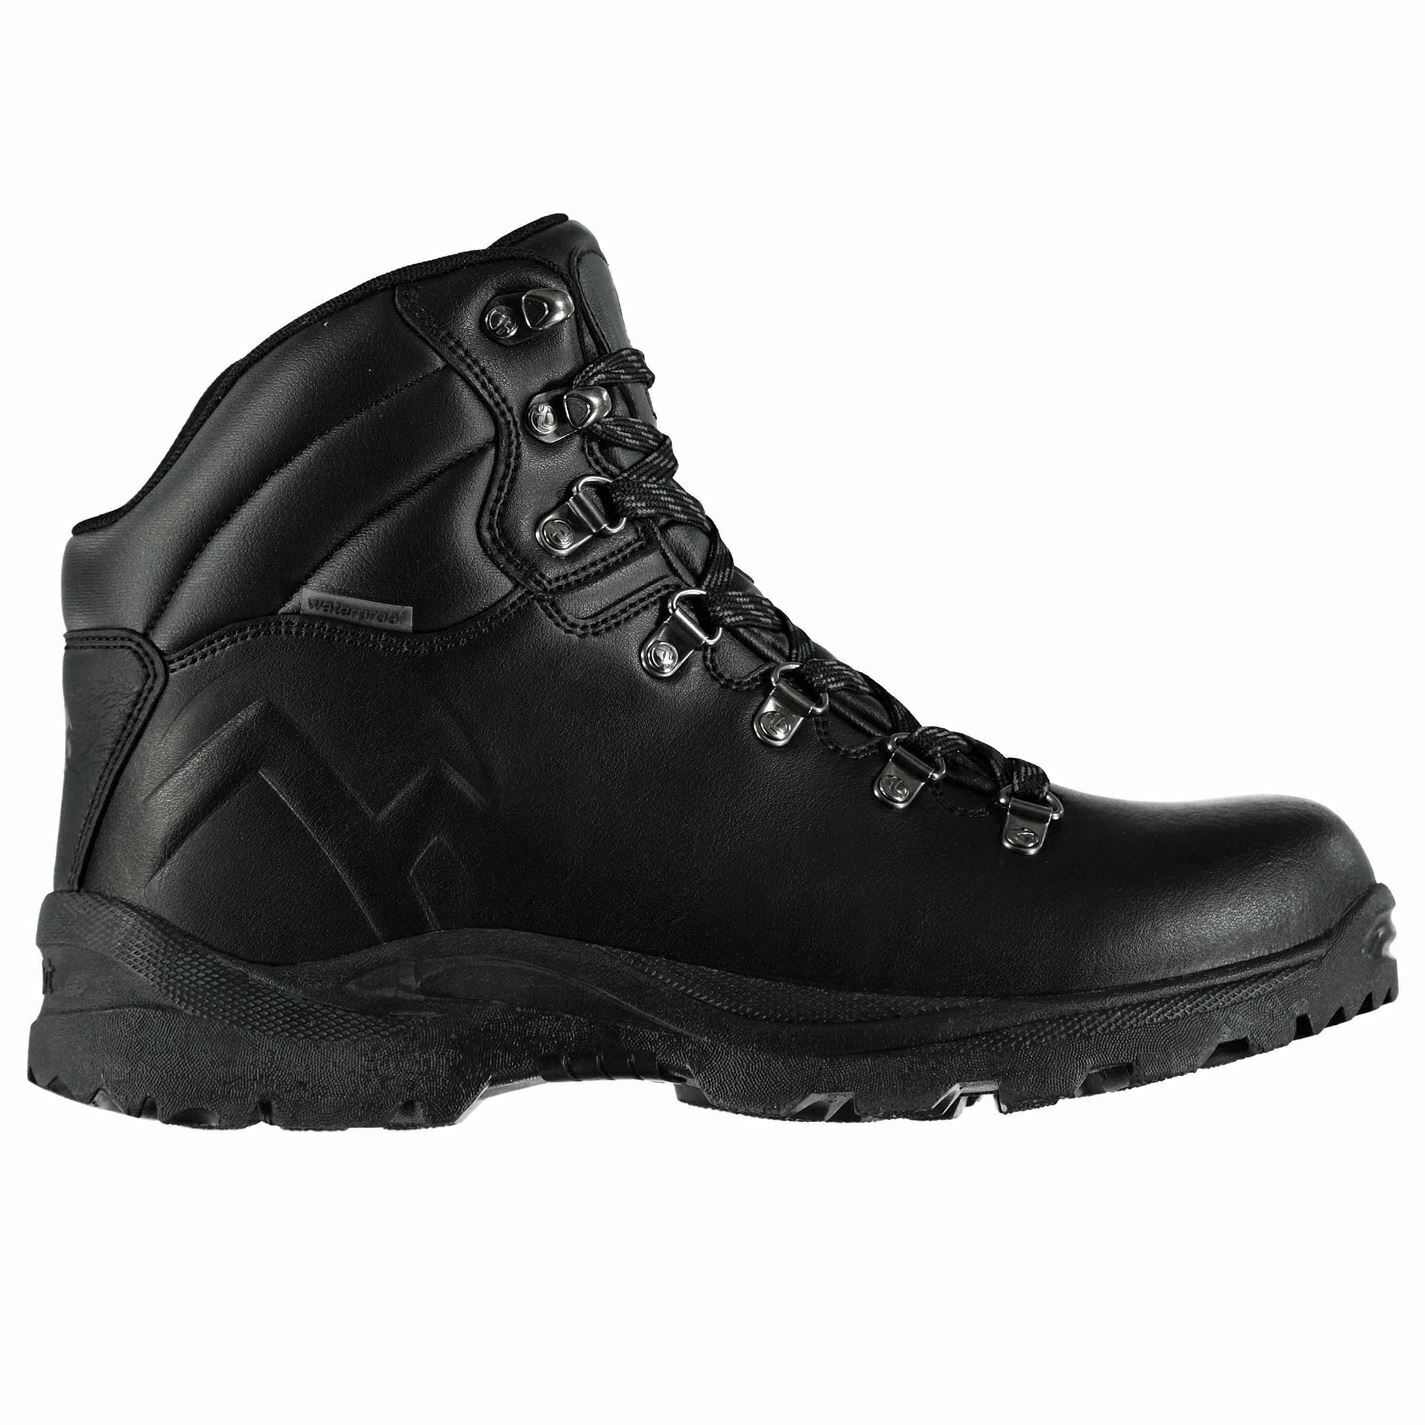 Gelert Mens Atlantis Walking Boots  shoes Lace Up Waterproof Padded Ankle Collar  convenient